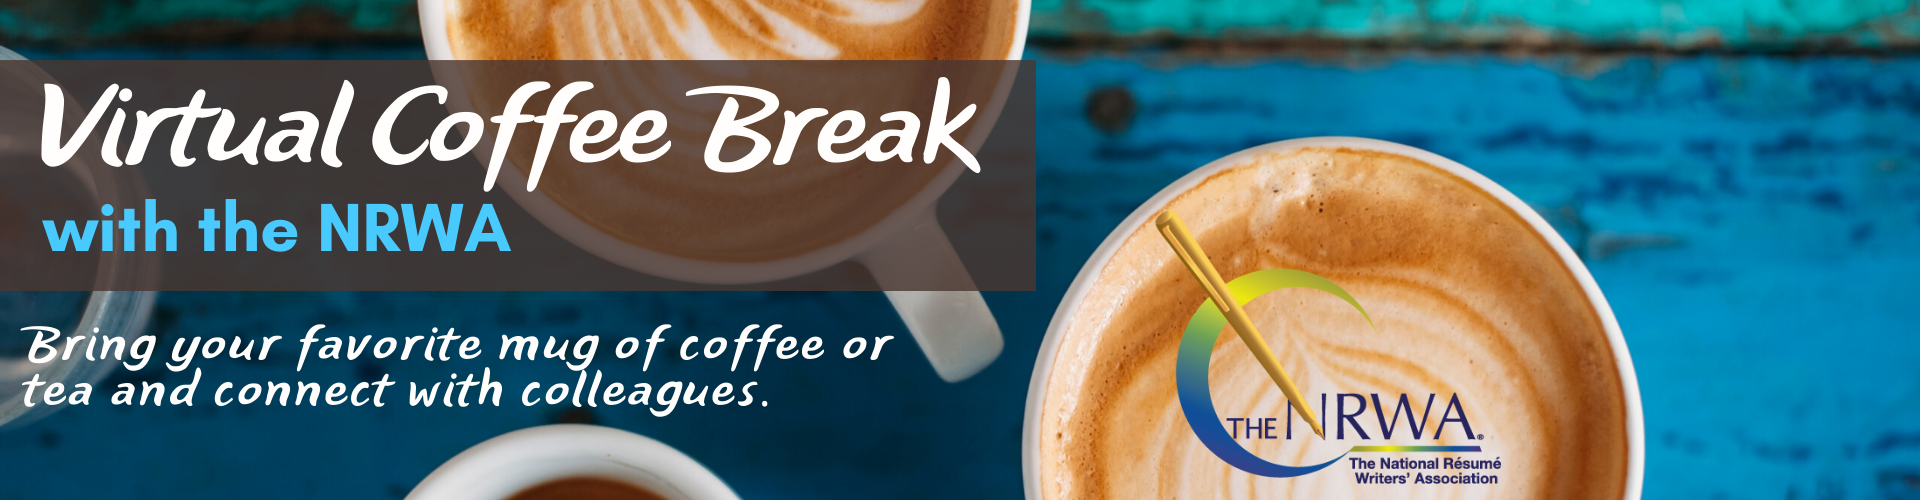 Virtual Coffee Break with the NRWA - Bring your favorite mug of coffee or tea and connect with colleagues.